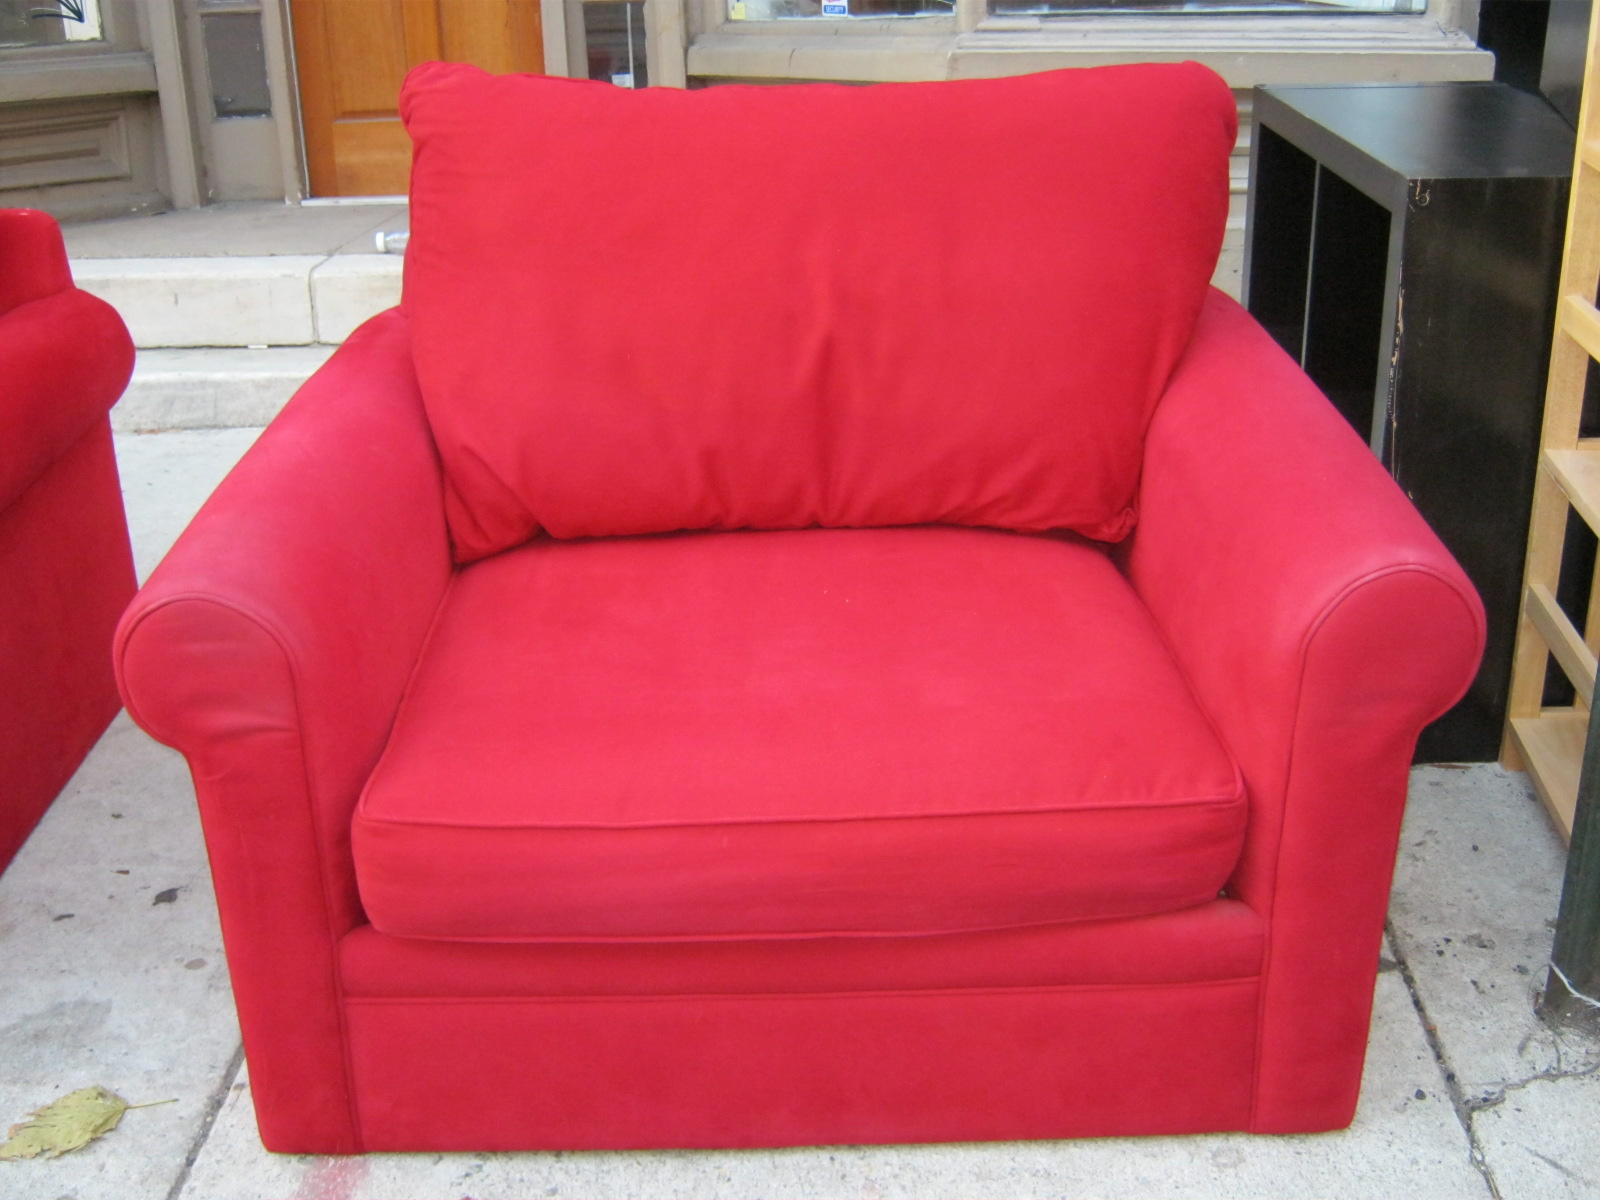 Uhuru Furniture & Collectibles Red Sofa Chair and Ottoman Set SOLD